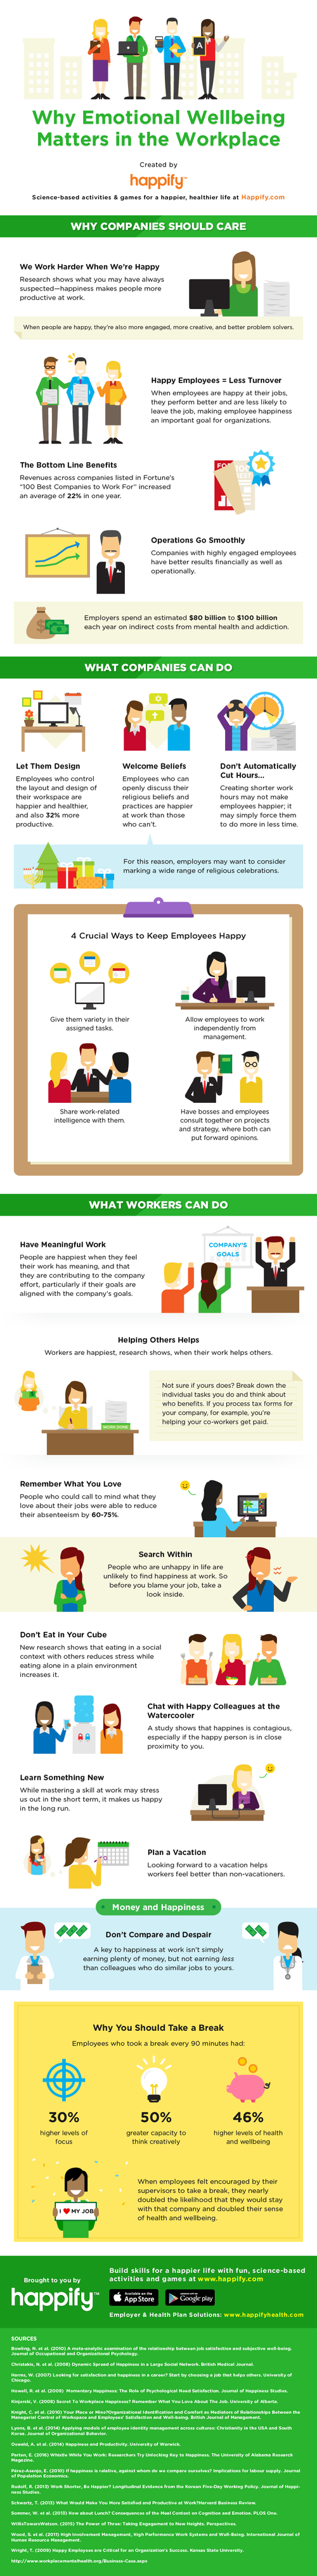 Why your Happiness should be Important to your Employer